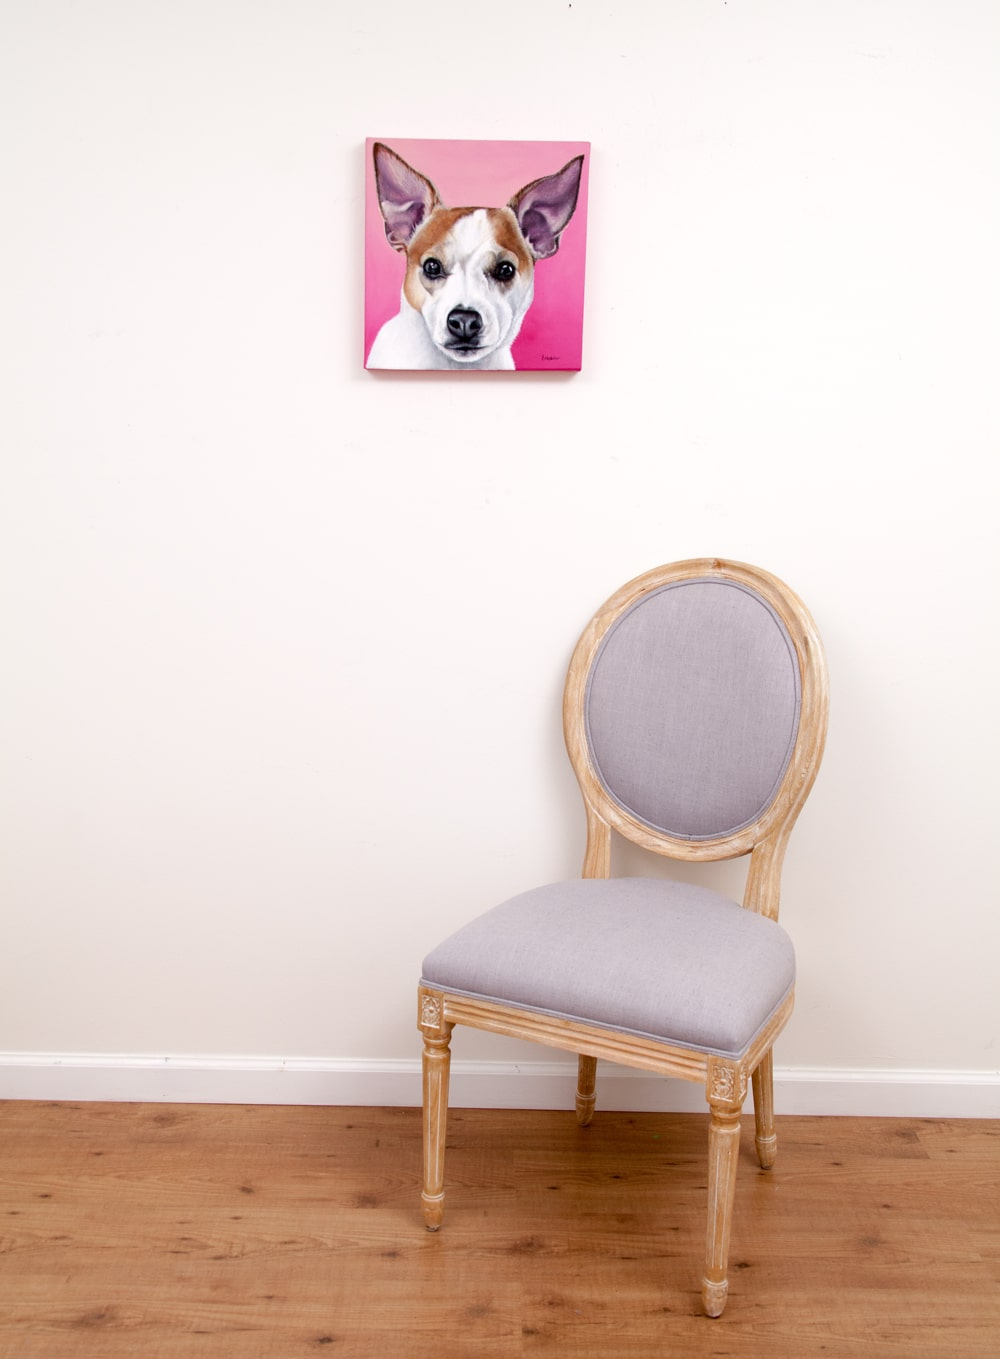 Custom dog portrait of a jack russell and chihuahua dog by fine arts painter Erica Eriksdotter, with chair